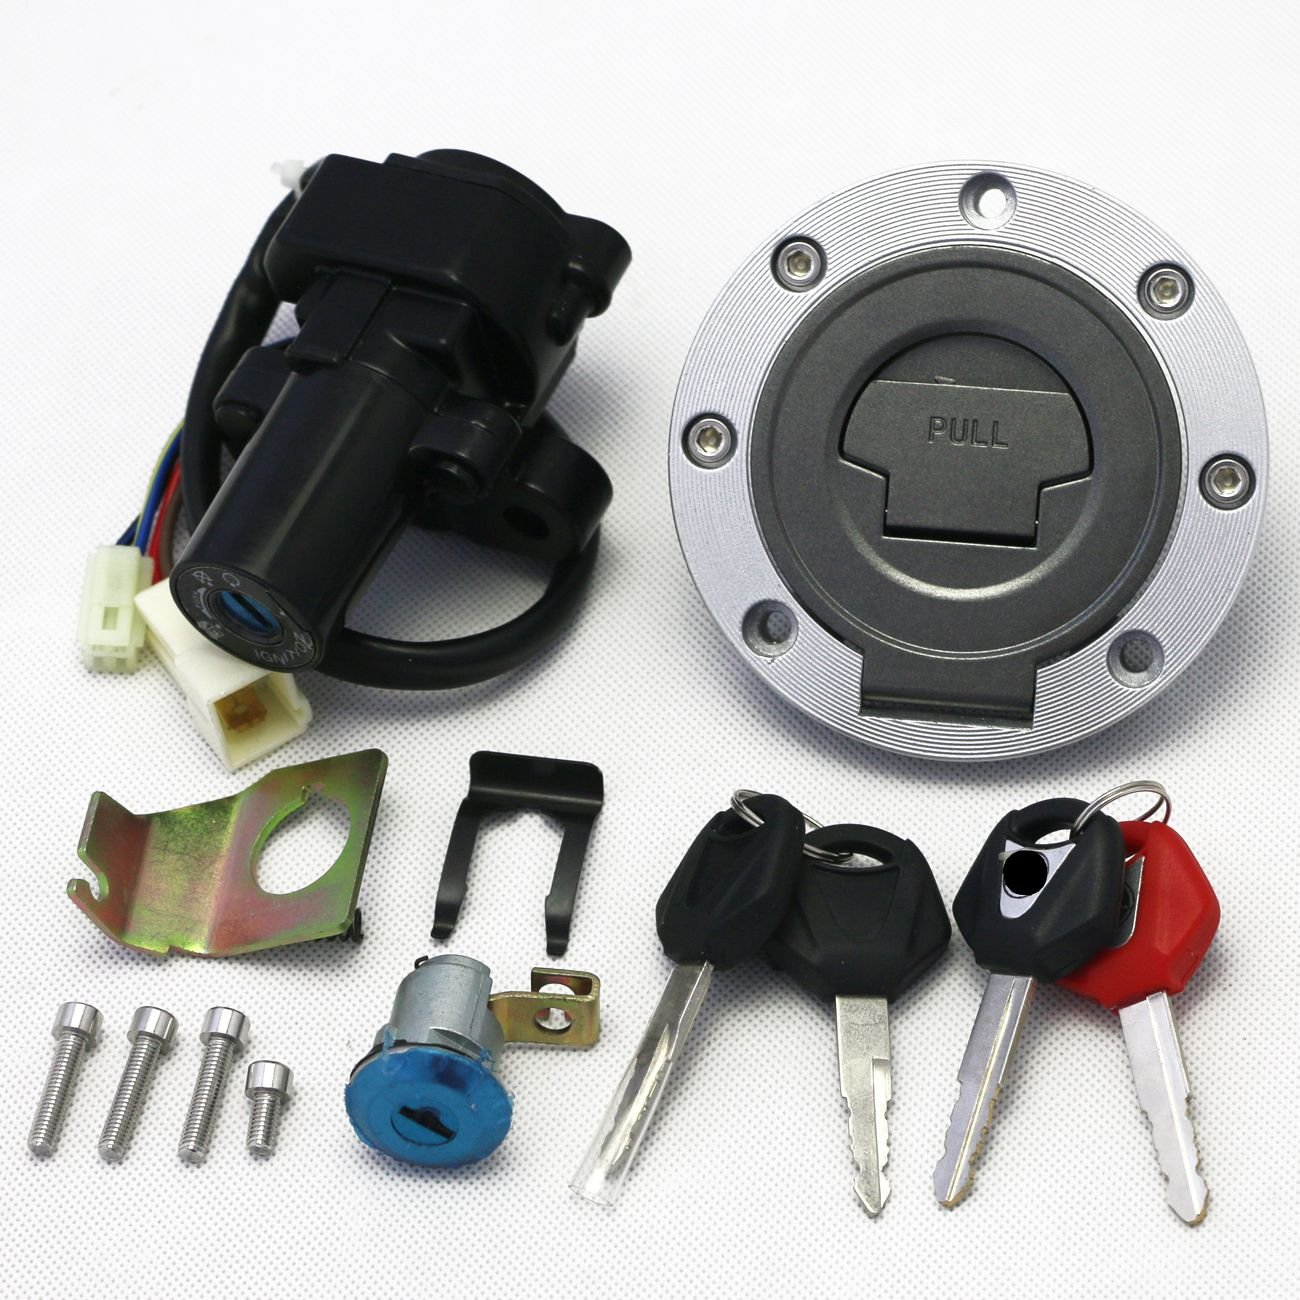 Ignition Switch Fuel Gas Cap Seat Lock Key Set for Yamaha YZF R1 2002-2003 2007-2010 R6 2004 2006-2009 FJR1300 2001-2010 FZ6 FZ6S FZ6N 2004-2010 COBIKE